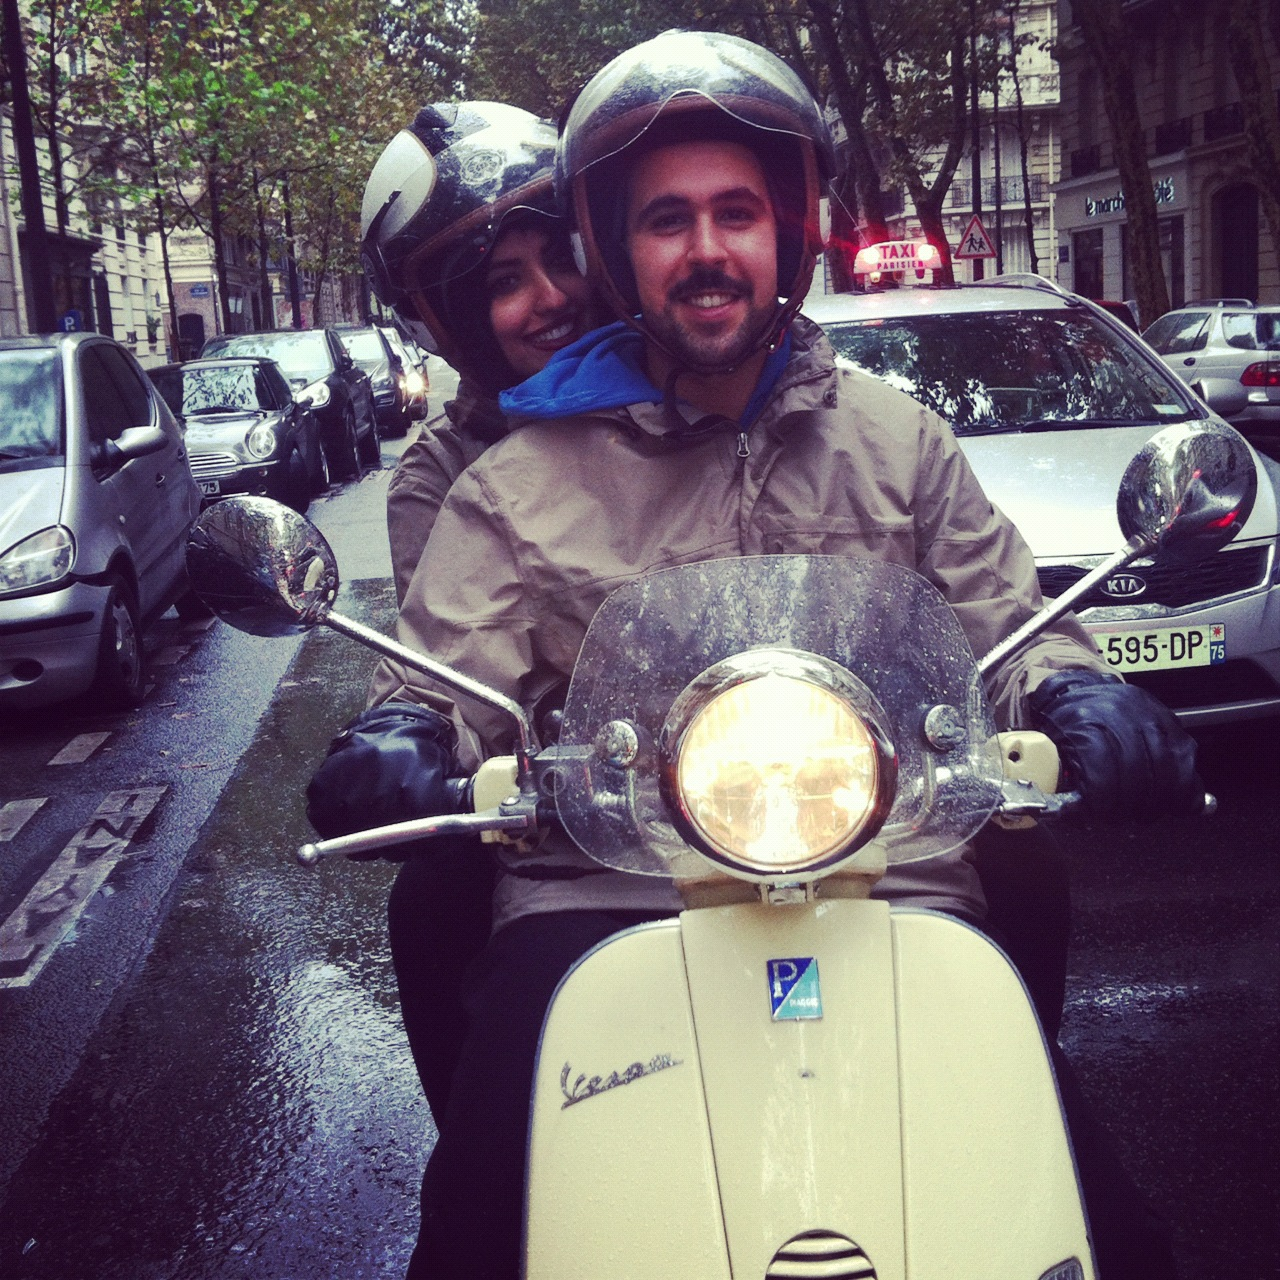 Streets of Paris by Vespa scooter during a Paris sightseeing tour.